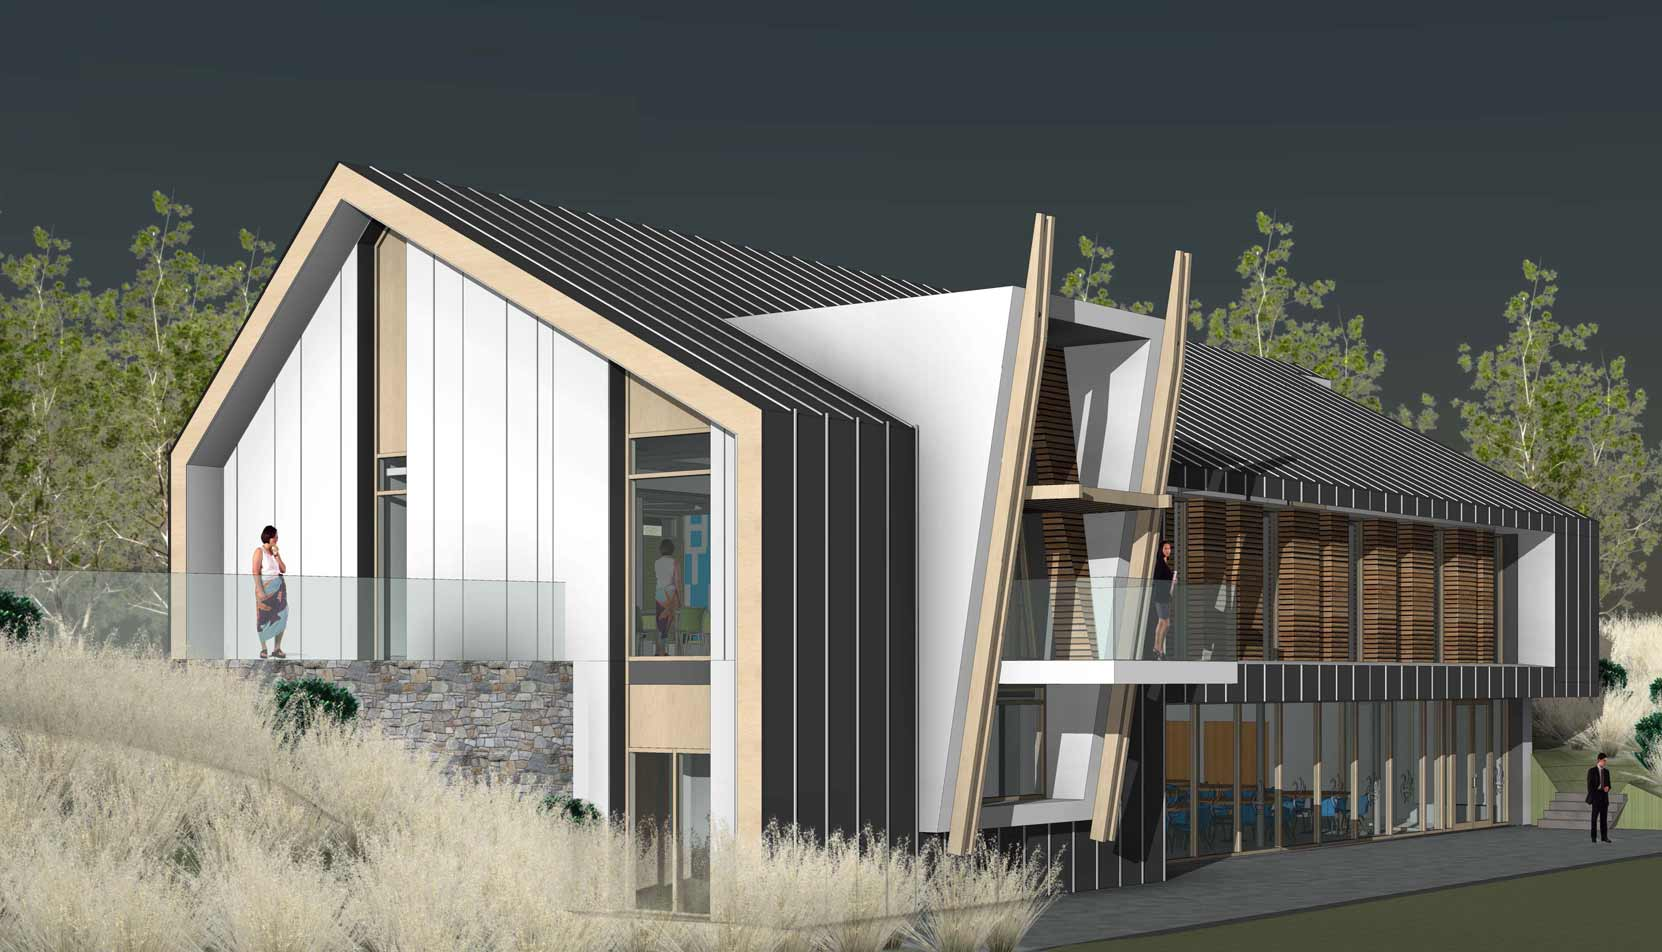 West Moberly Health Centre, Moberly Lake, BC (Image Credit: Iredale Architecture)